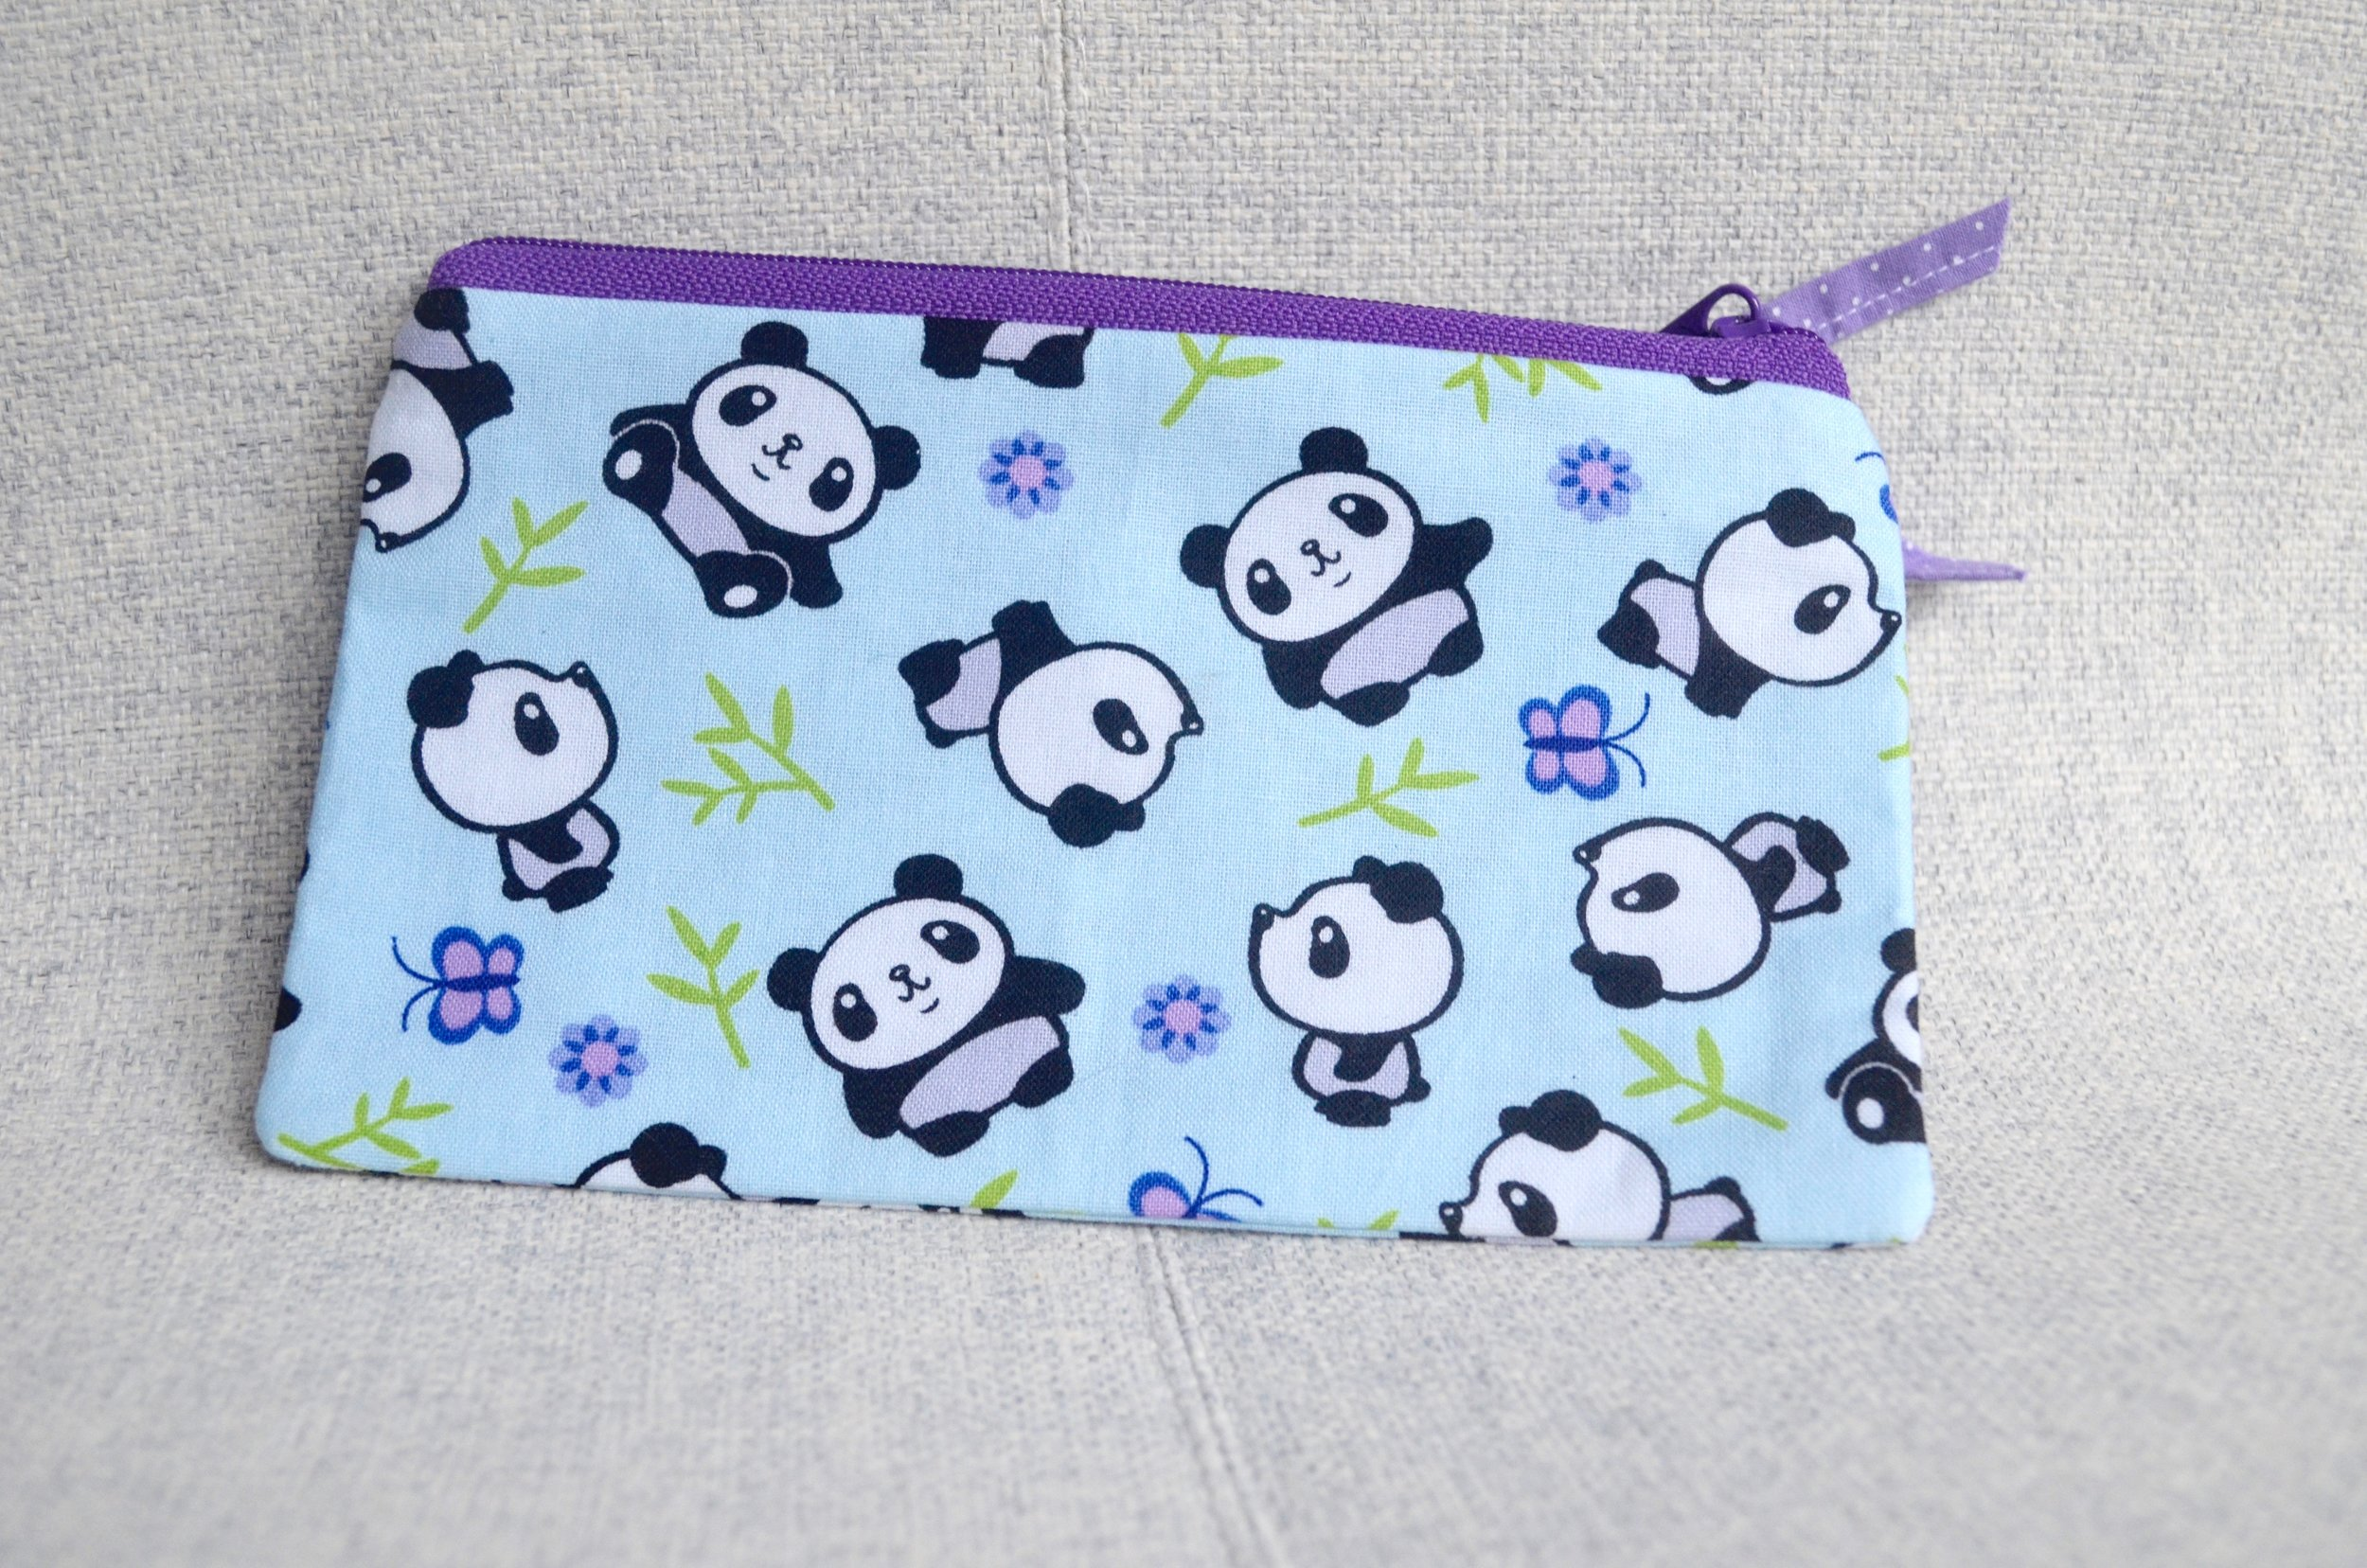 Panda notions pouch from SewFlo